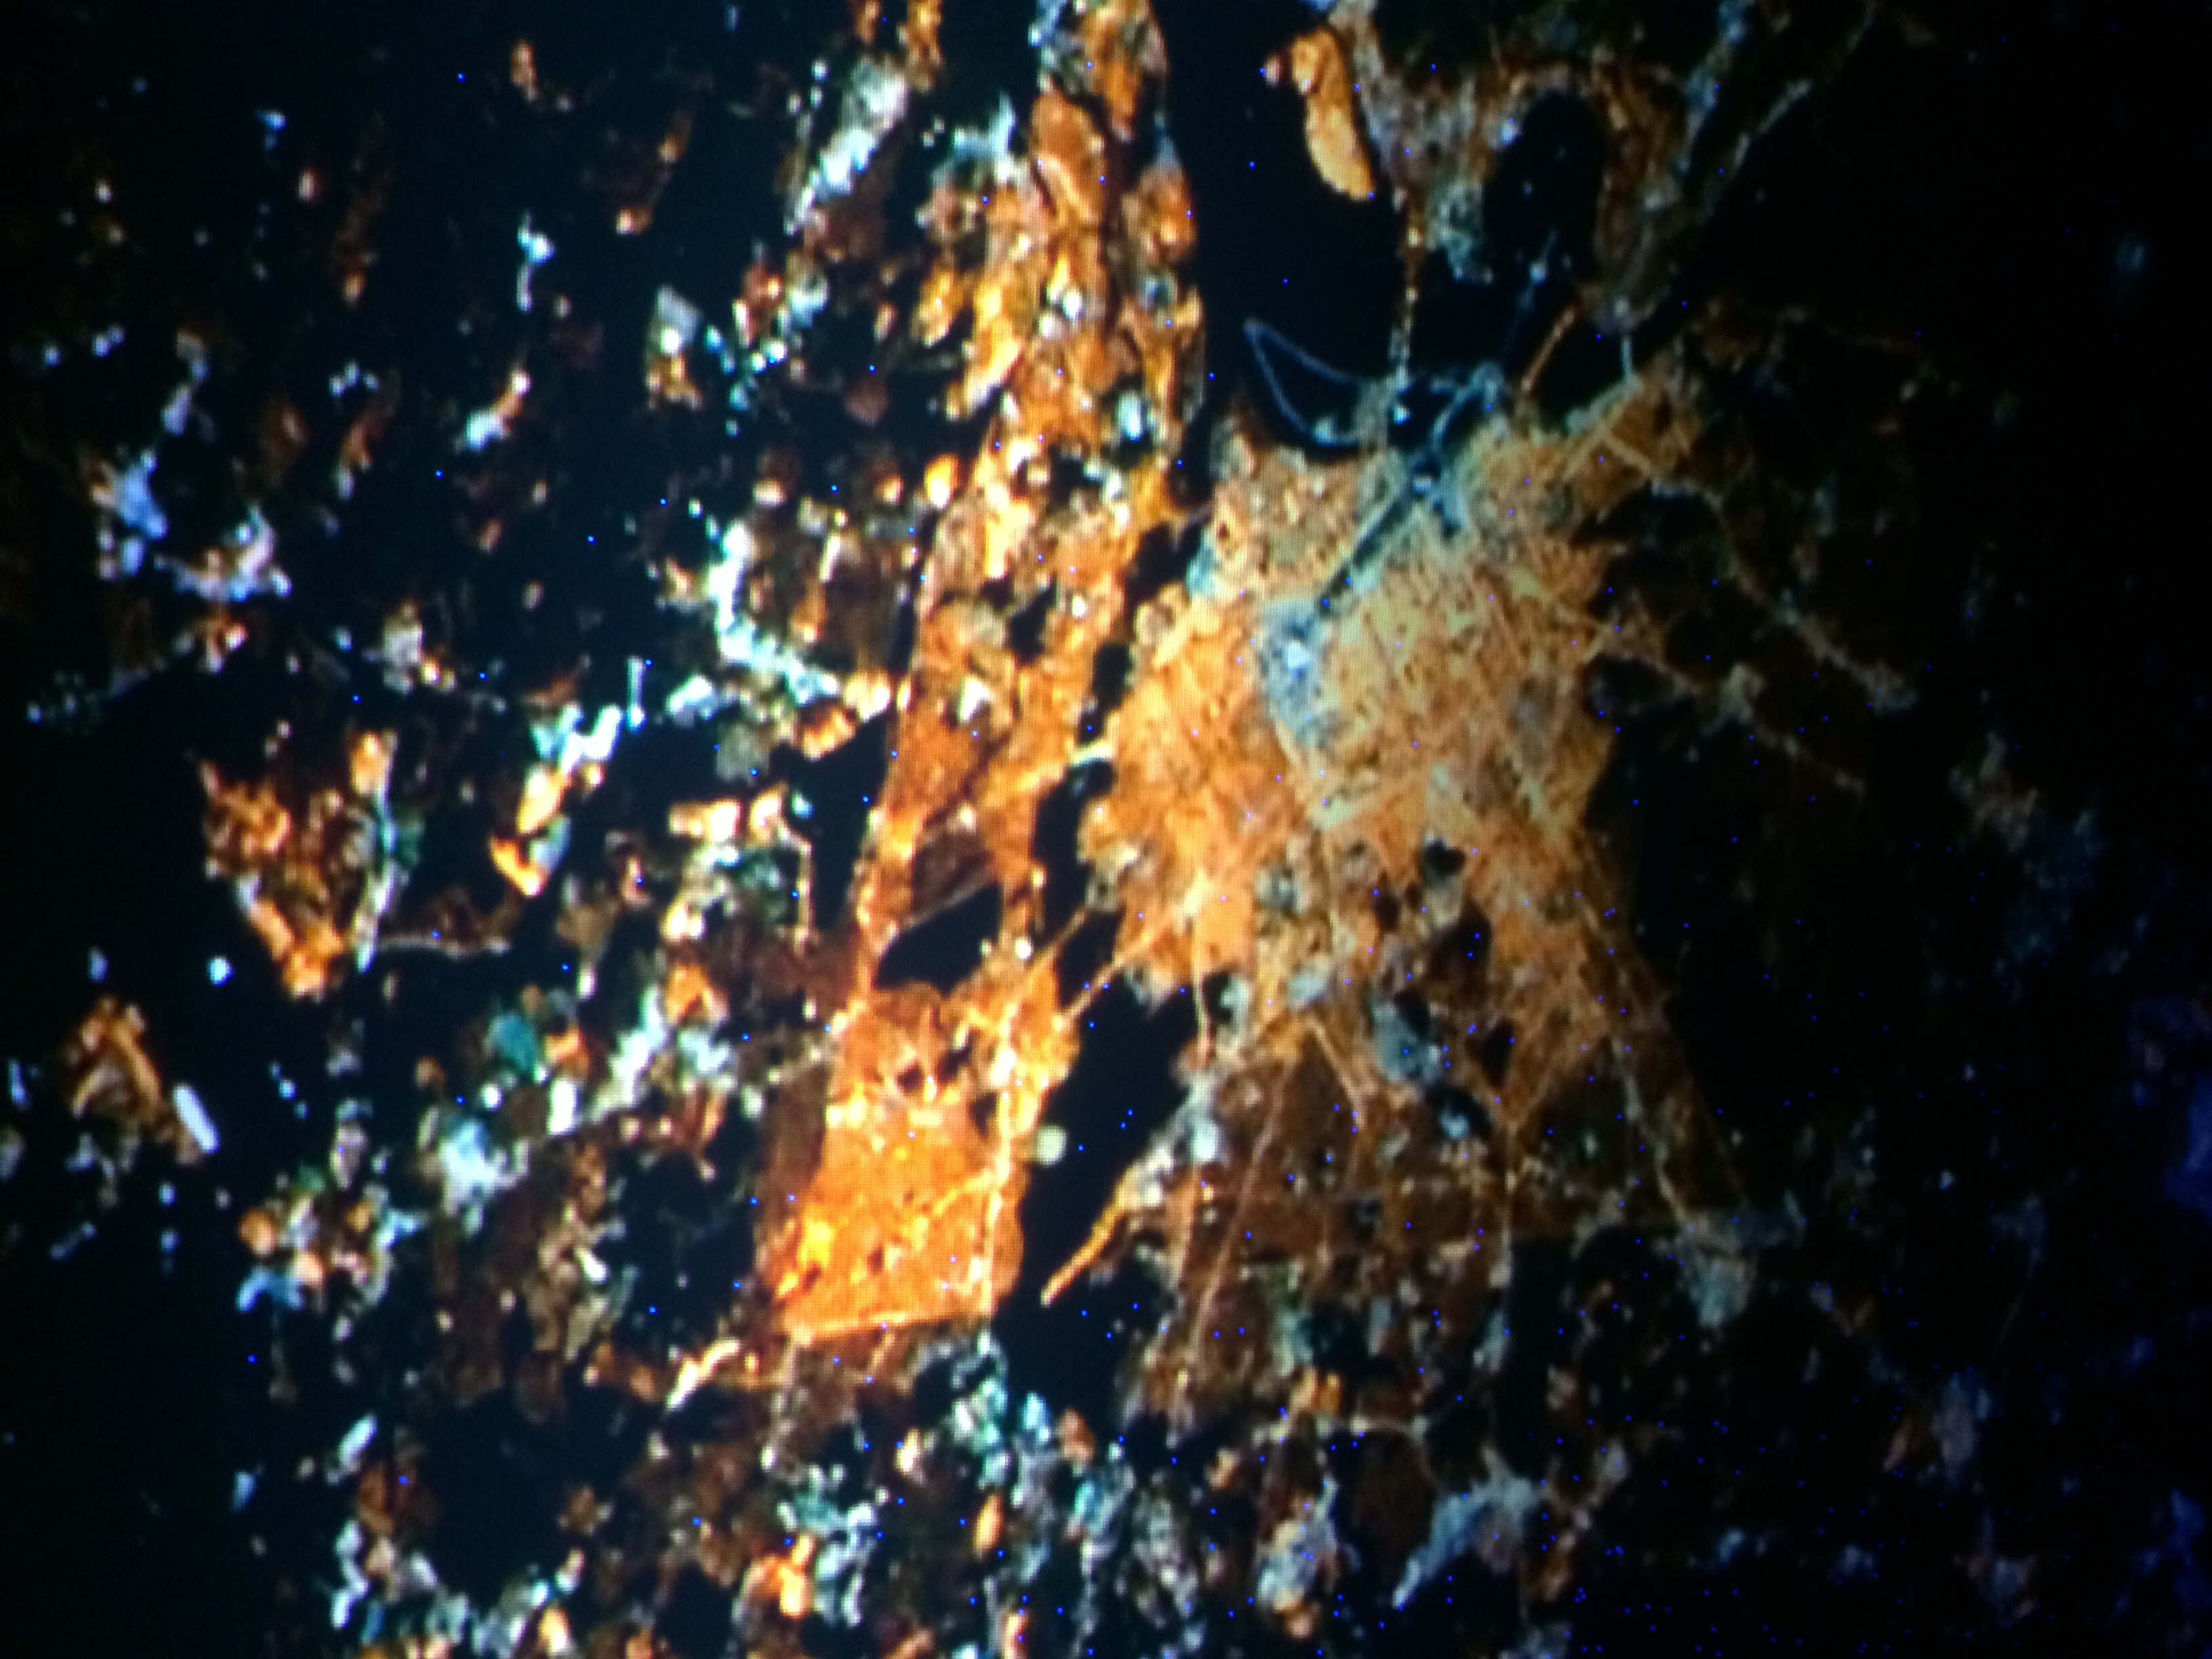 the lost symbol images washington dc from space at night. hd